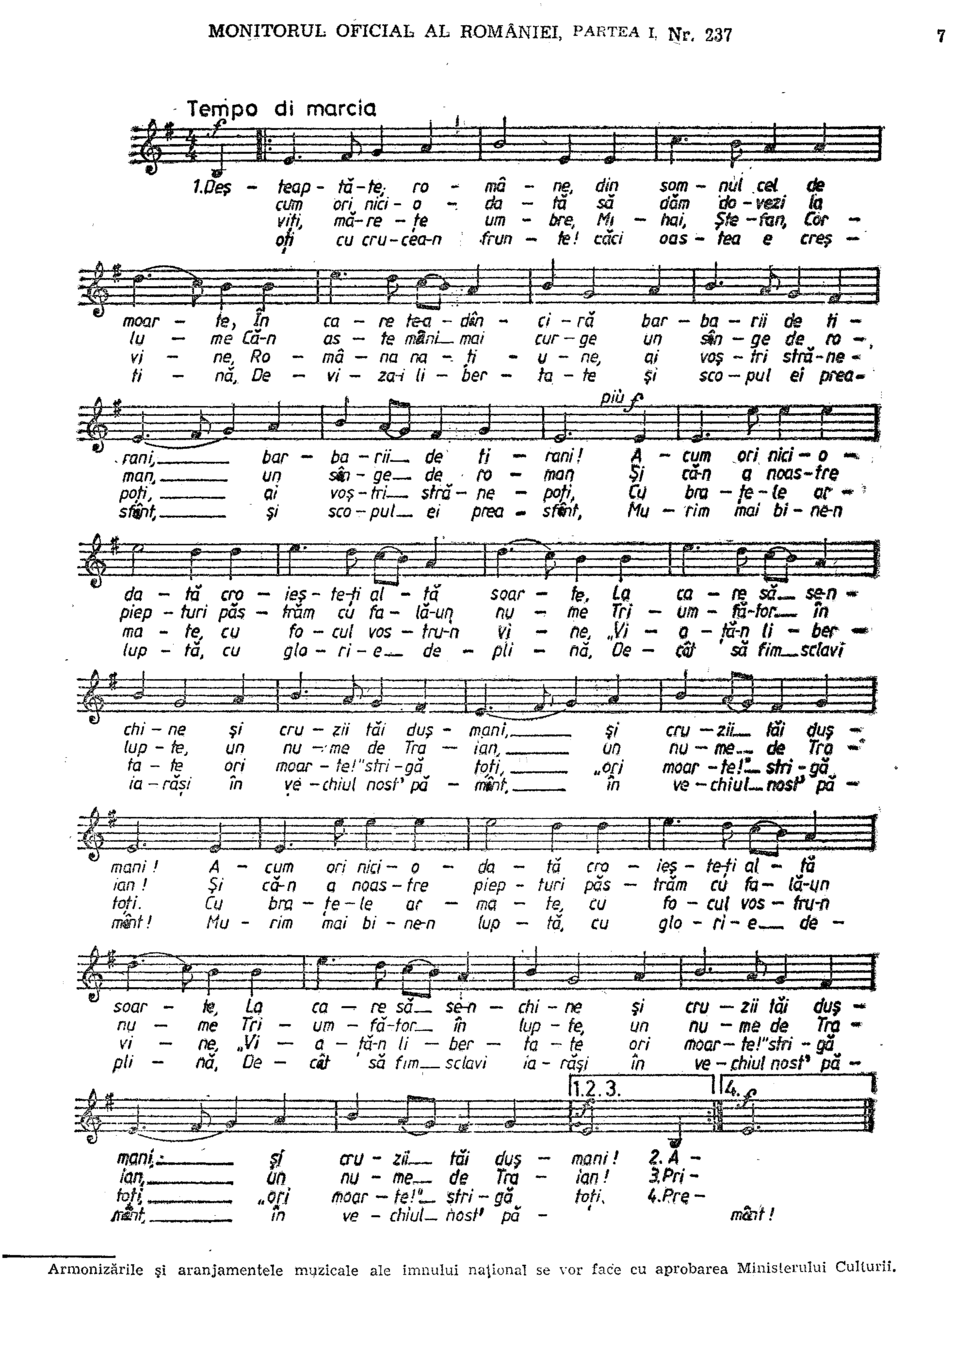 National Anthem of Romania (page 3)